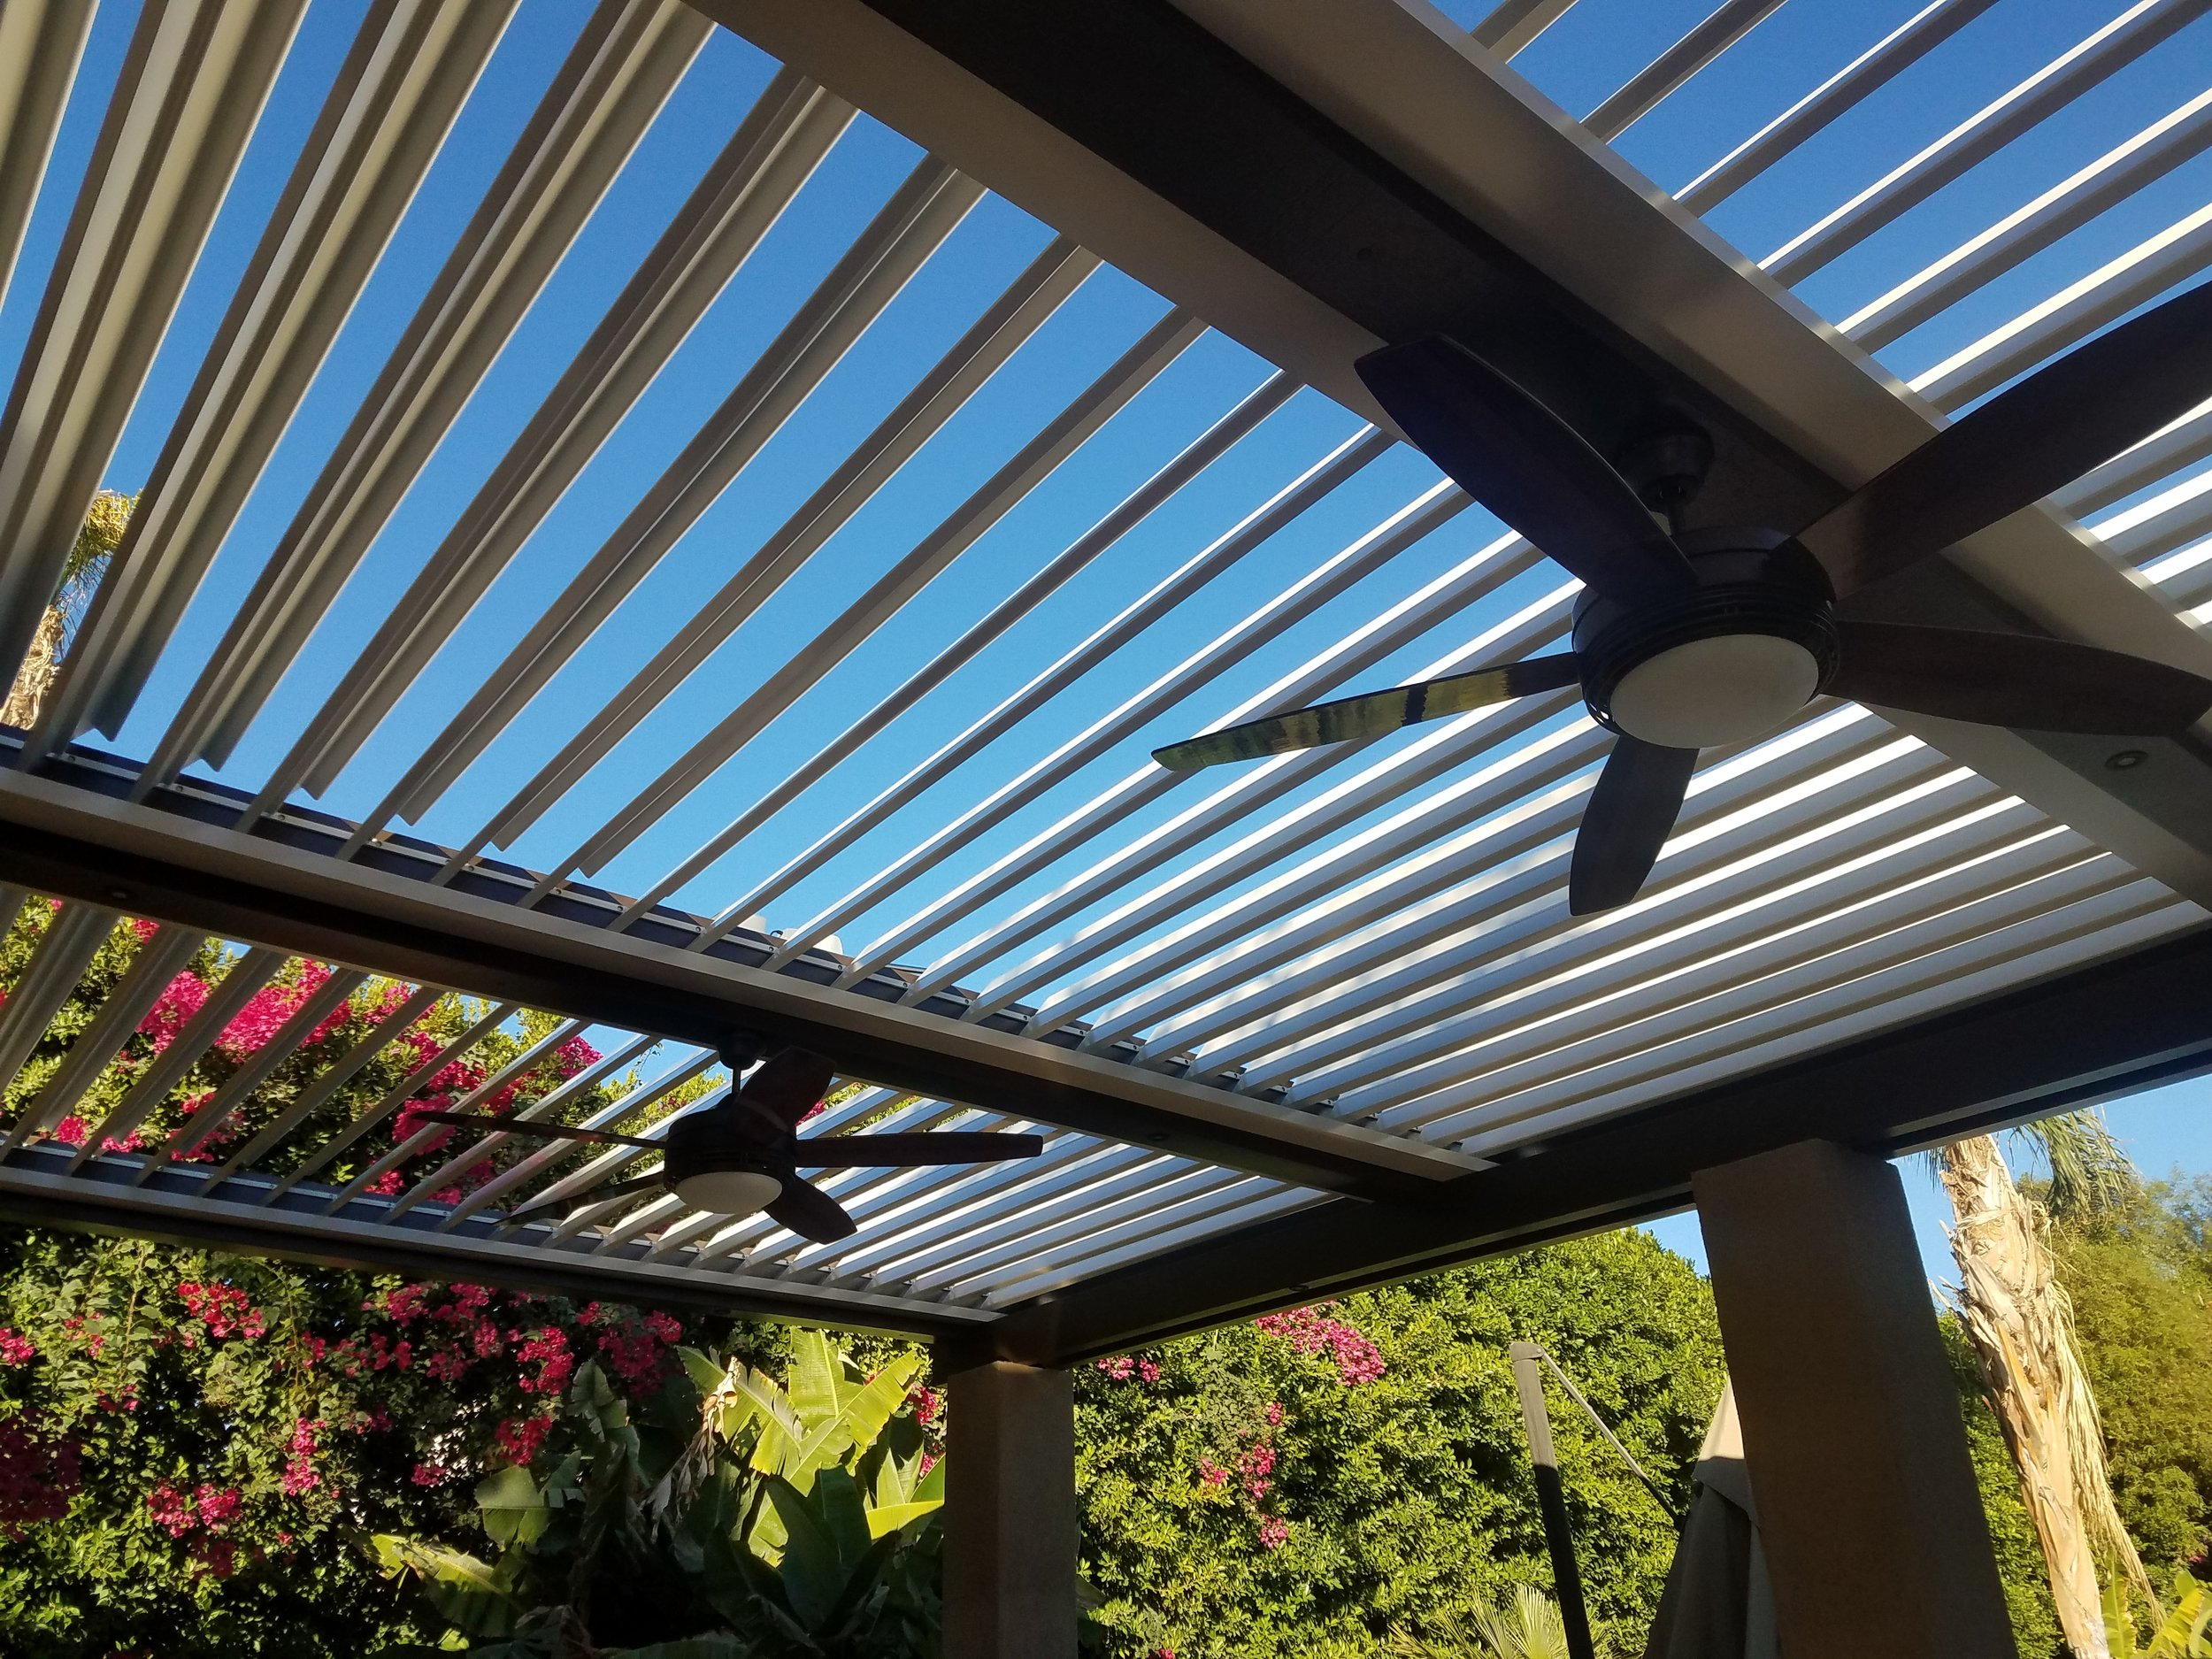 Apollo opening roof system Indian Wells 92210